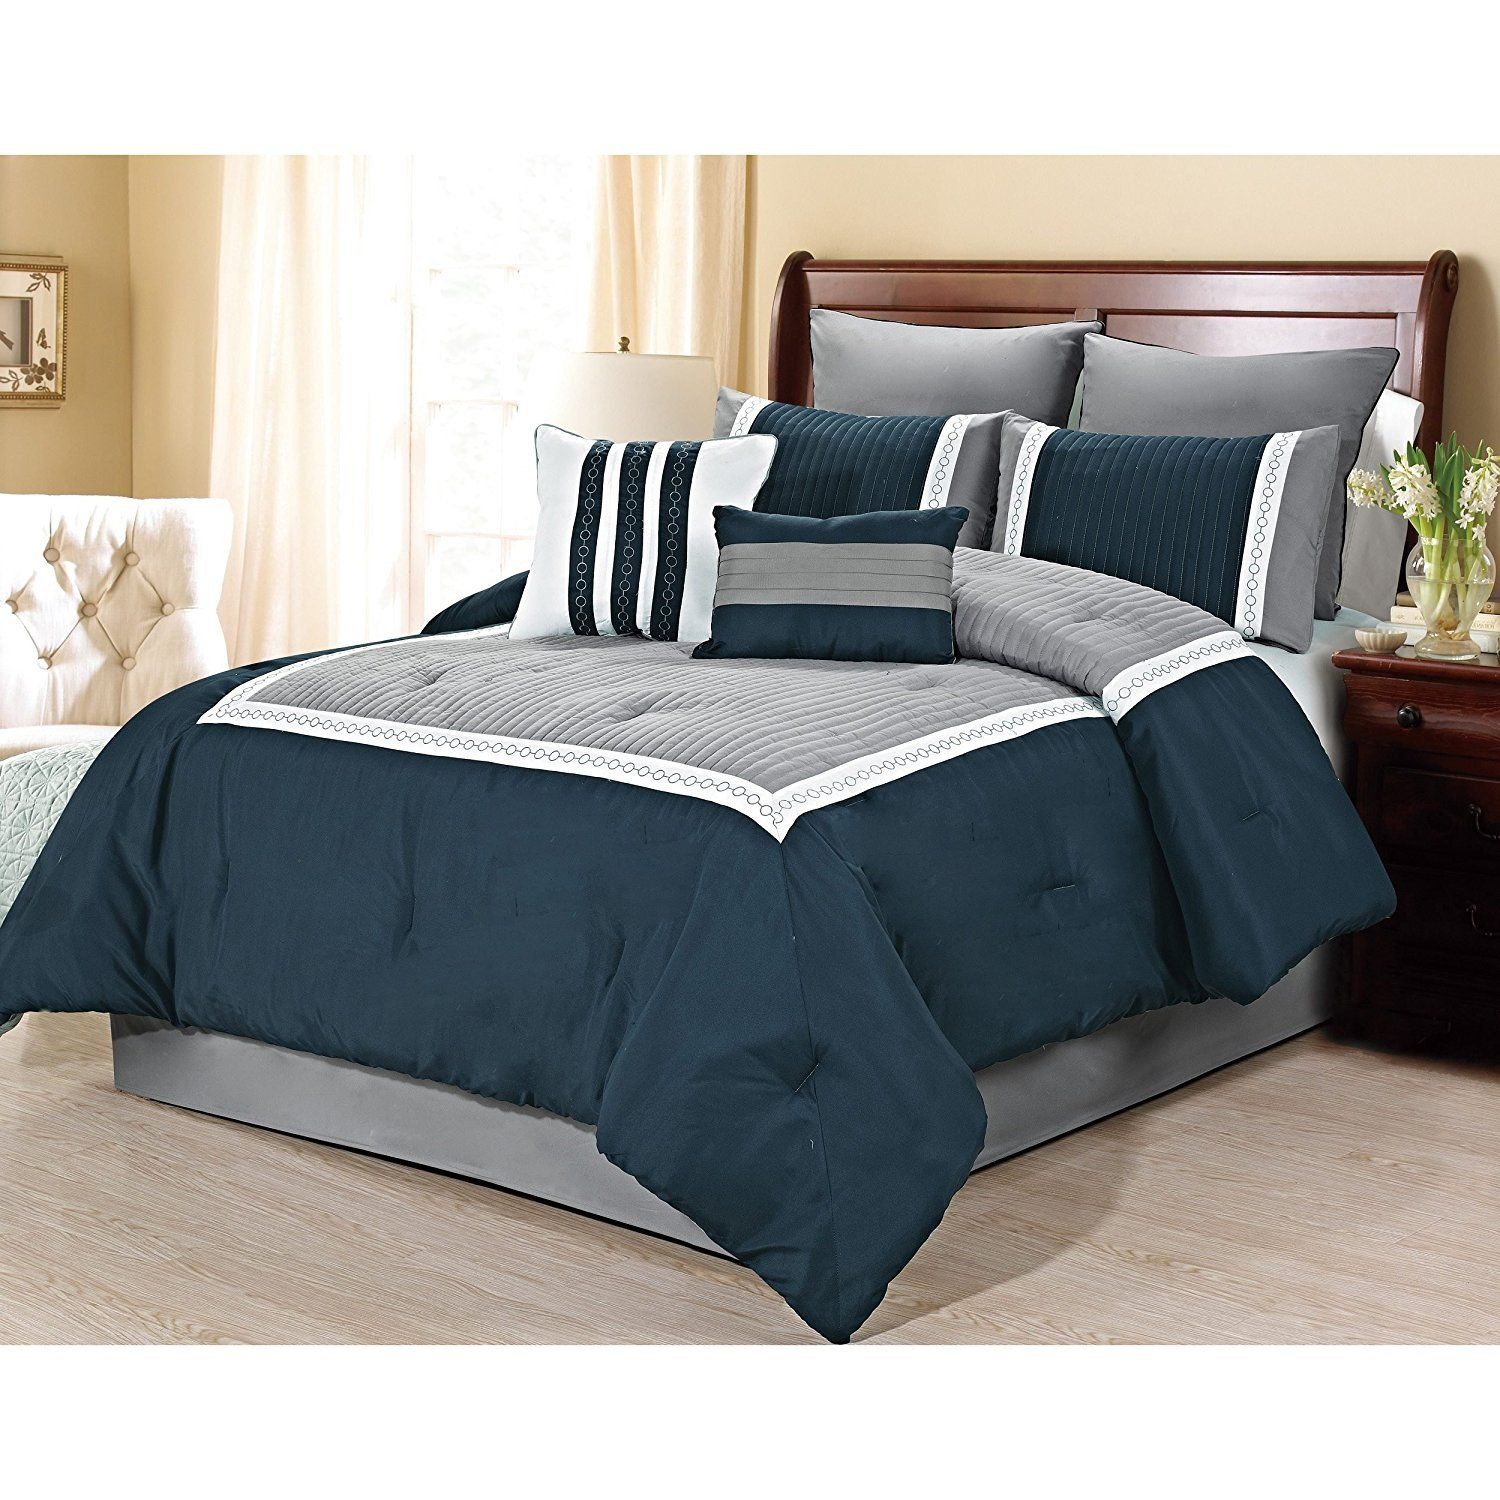 Master bedroom navy blue  Navy Blue Embroidered Textured Comforter Cal King California Set